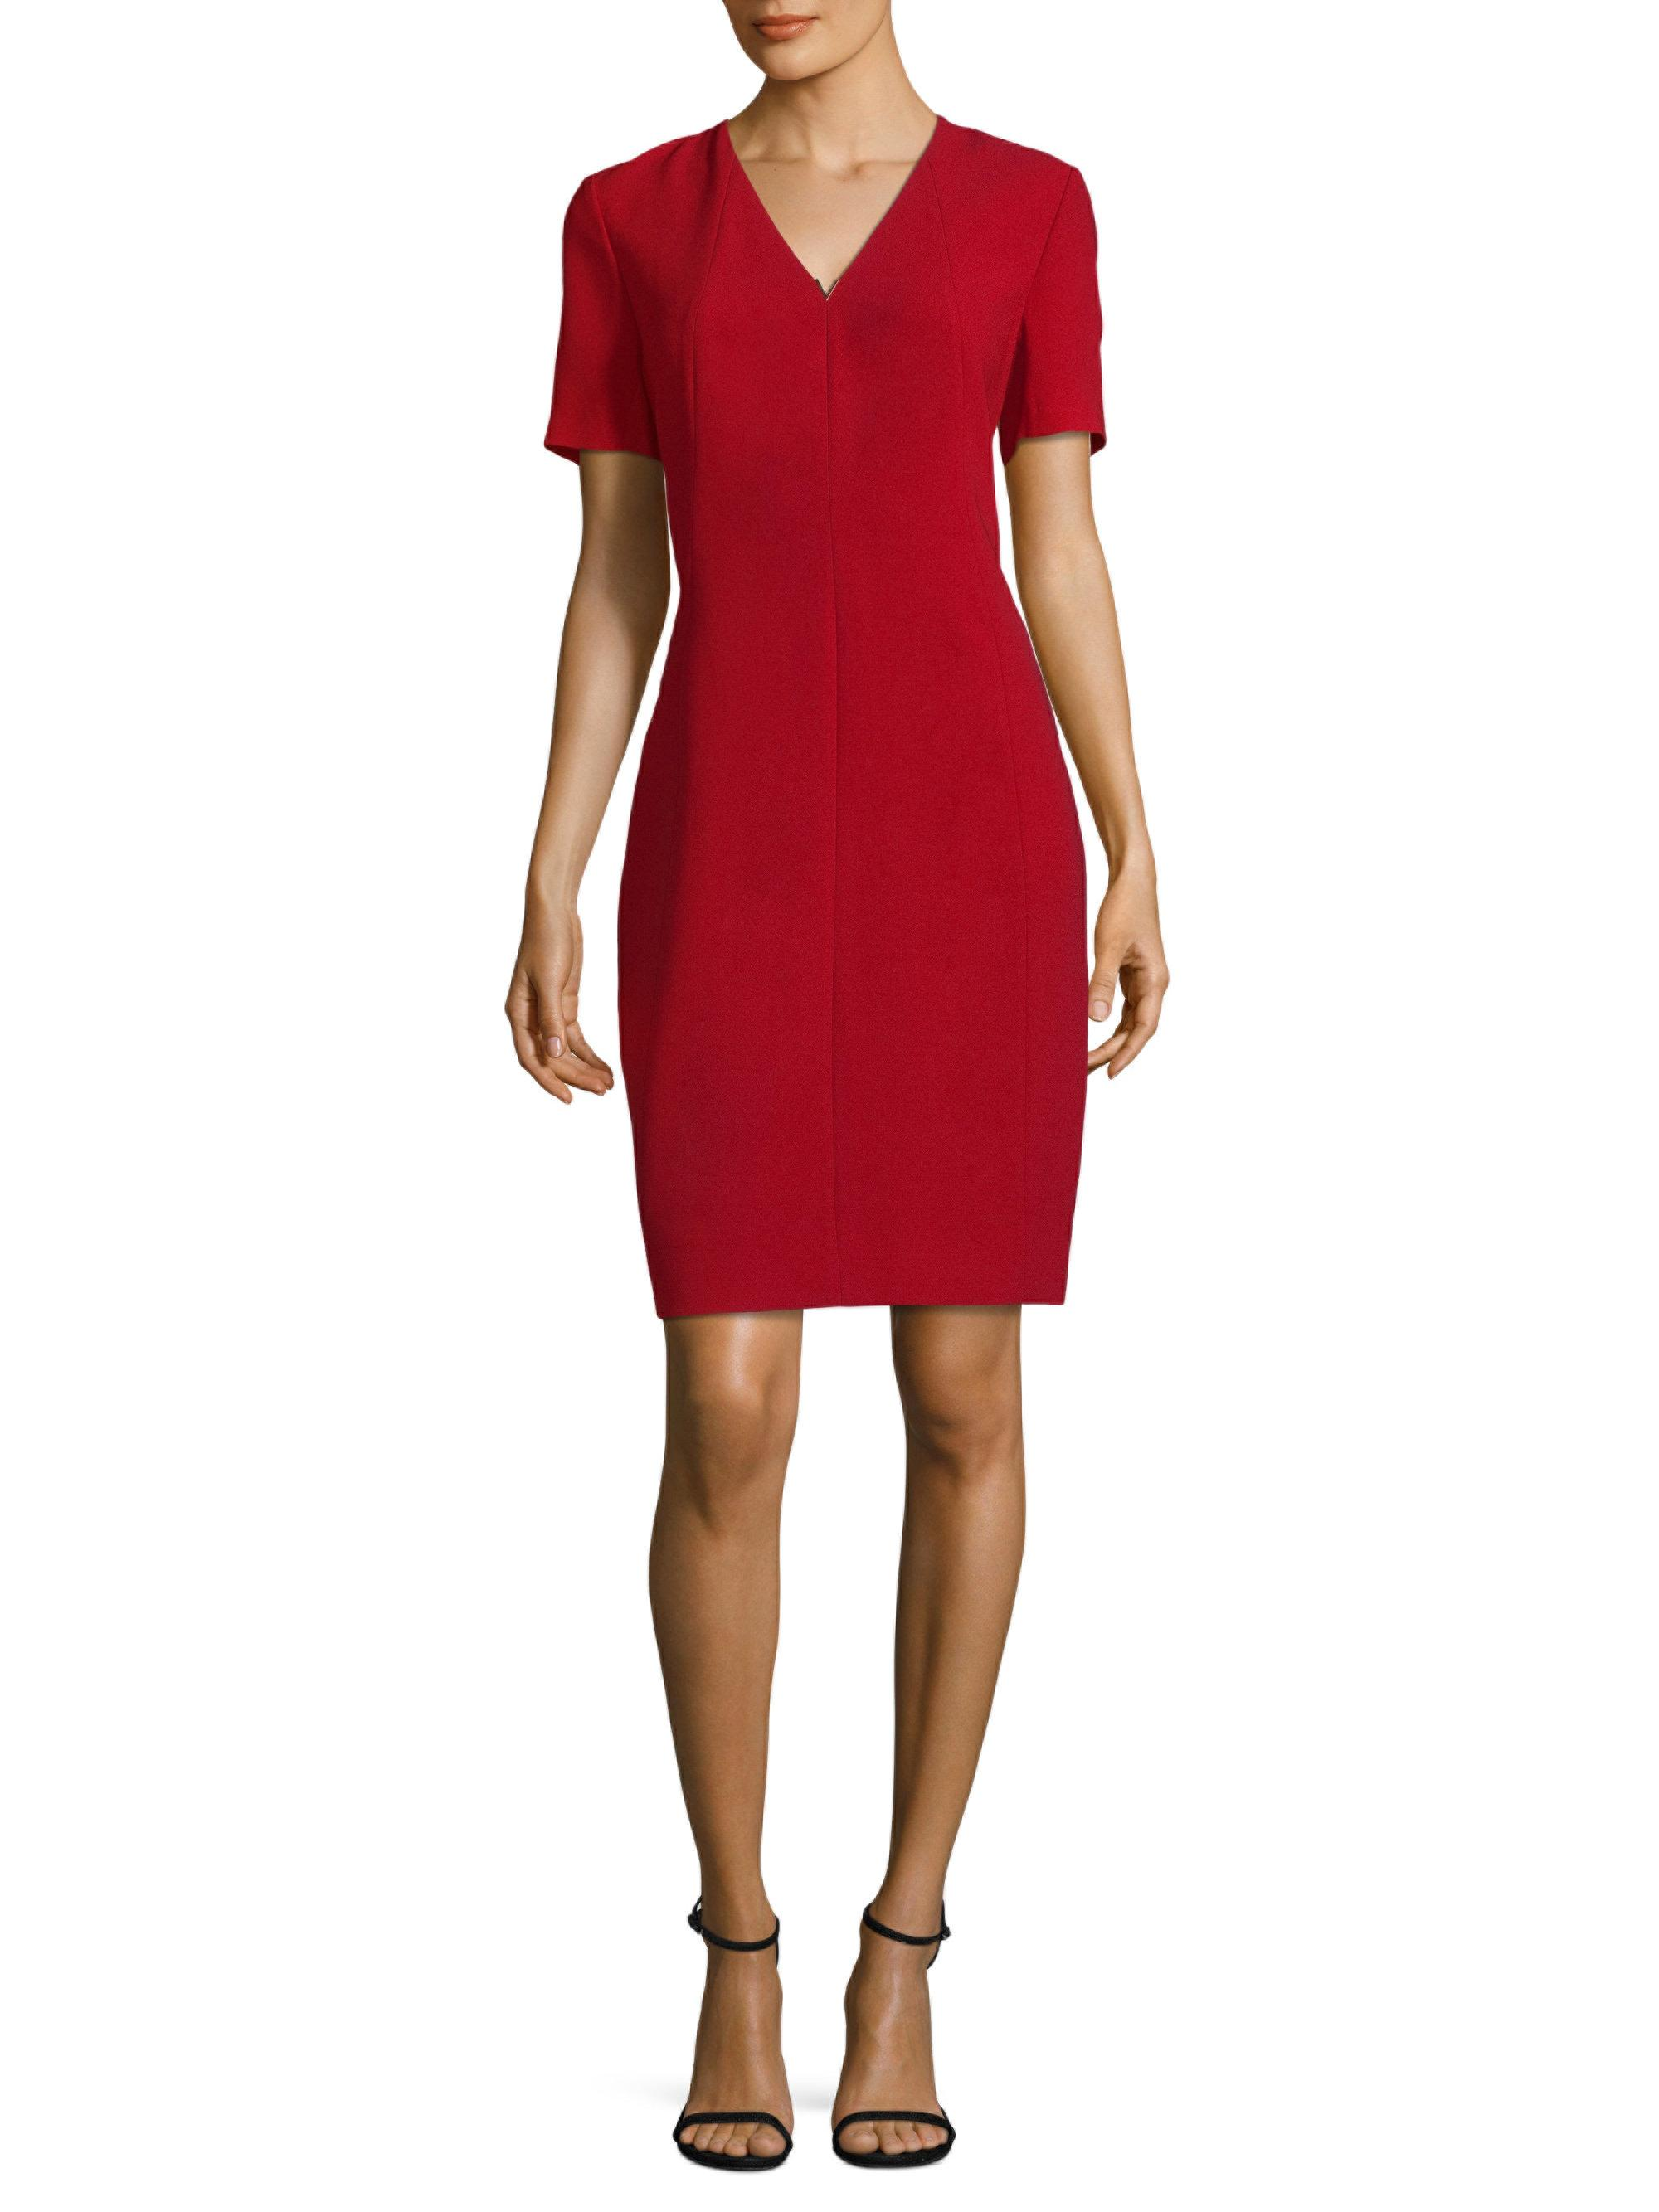 Lyst Elie Tahari Roanna Dress Satin Sheath Dress In Red